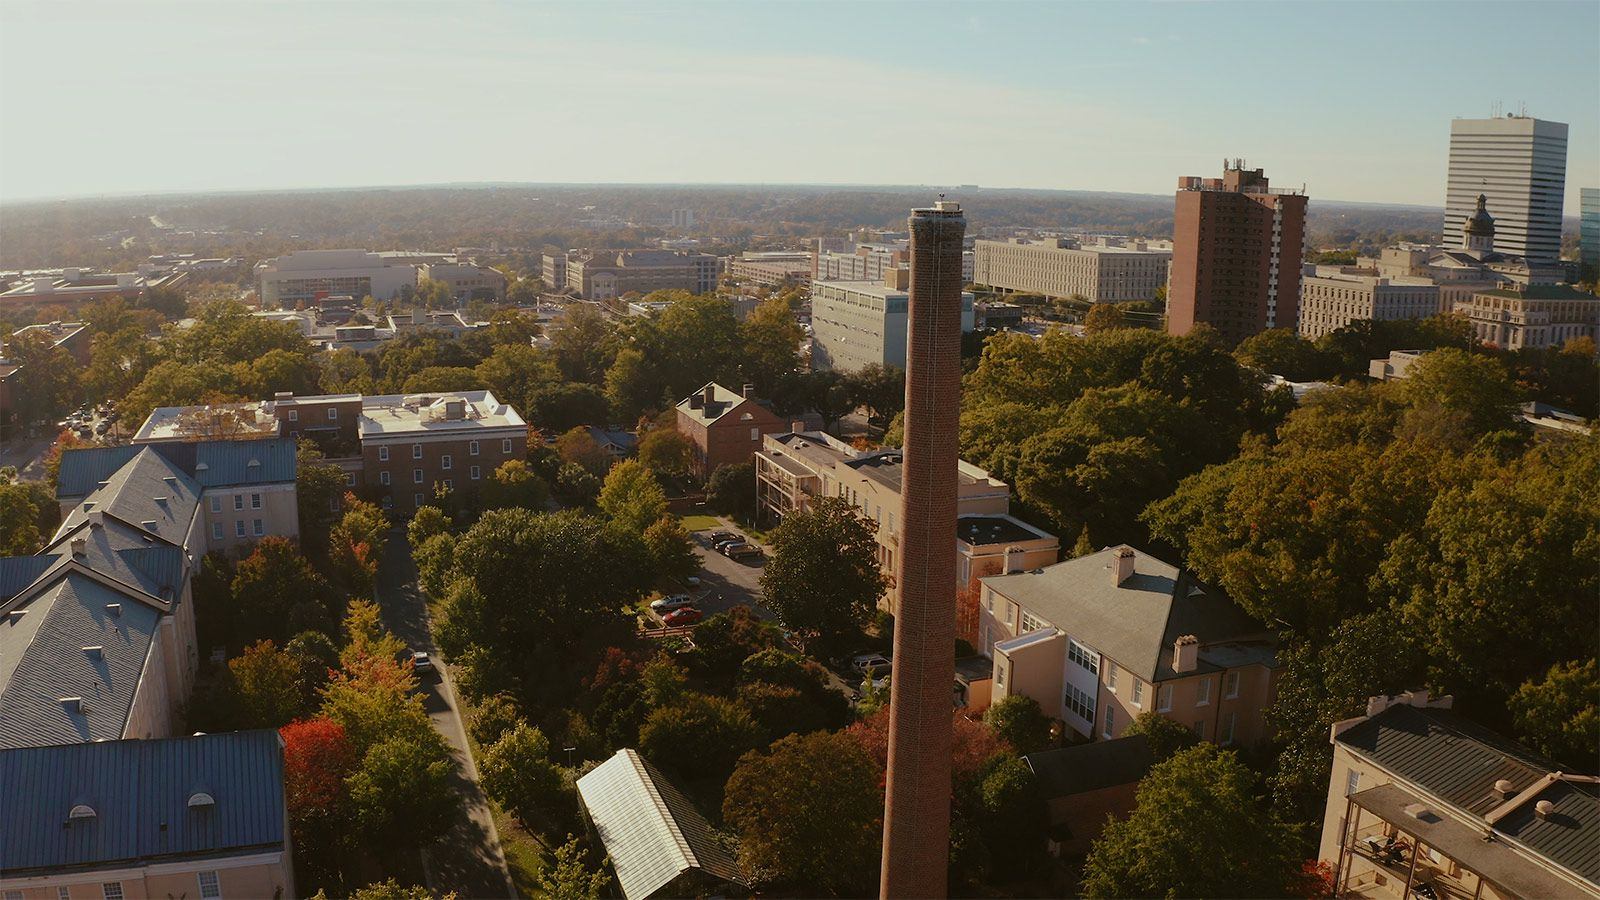 Aerial view of campus with rooftops, trees the smokestack in foreground and city of Columbia skyline off in the distance.